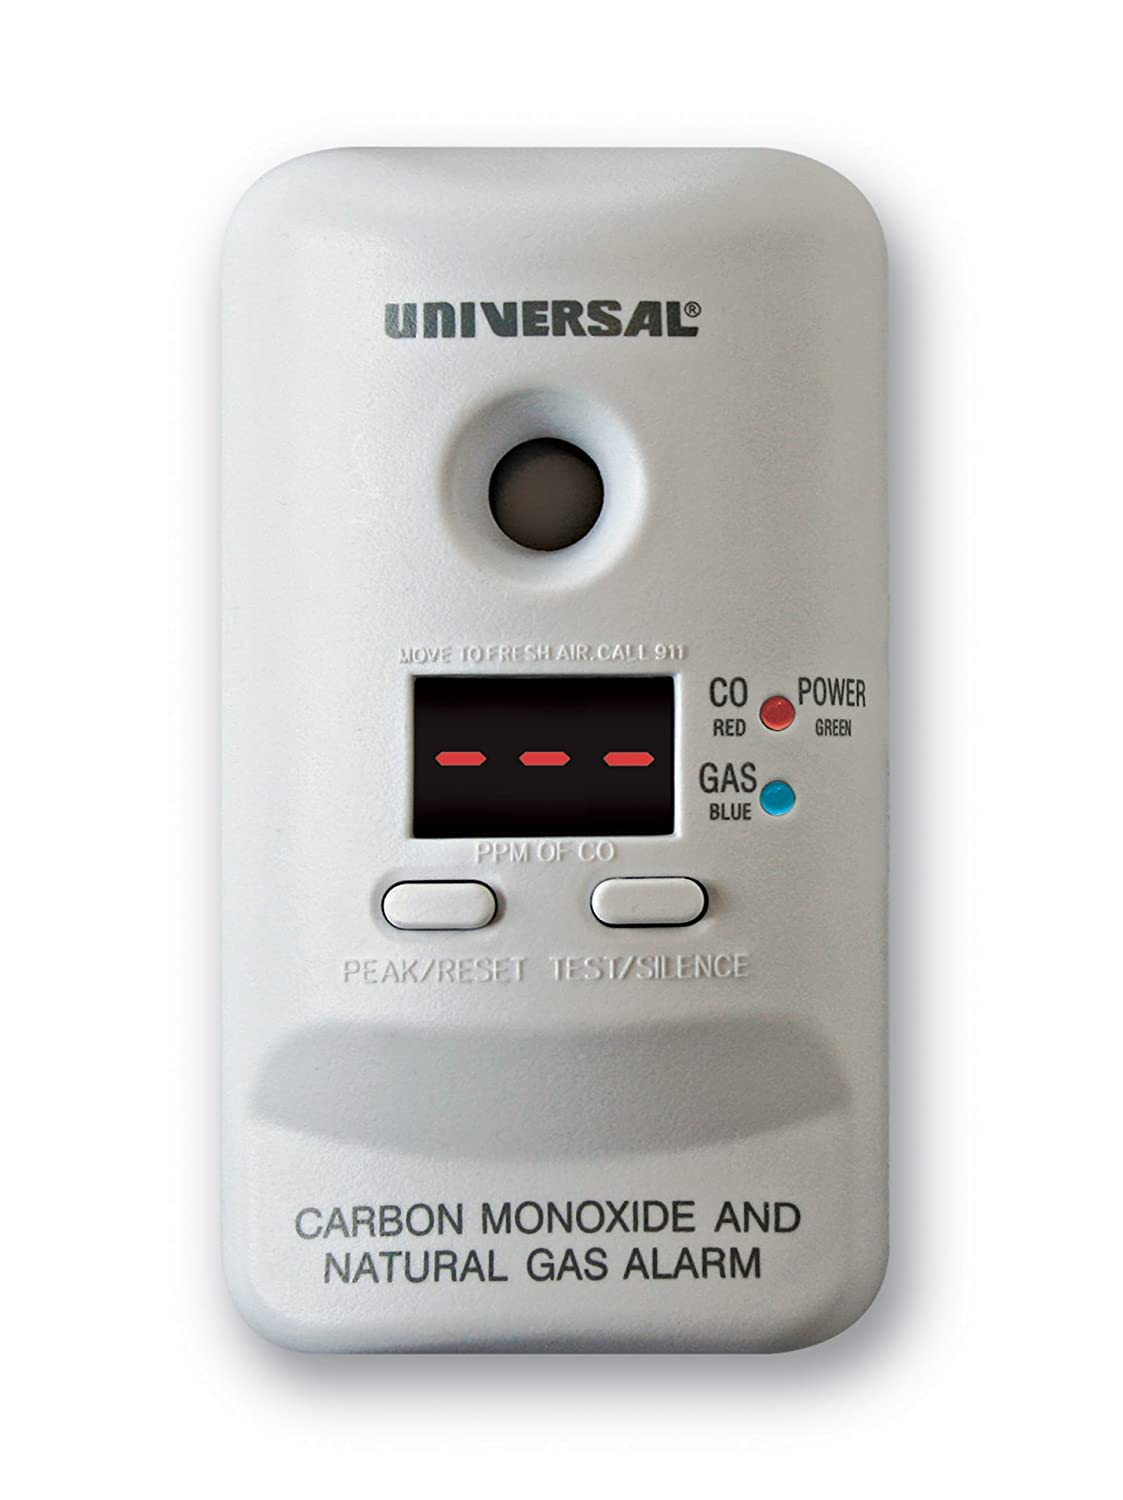 Universal Security Instruments MCND401 M Series Plug In Carbon Monoxide and Natural Gas Alarm with 9 Volt Battery Backup